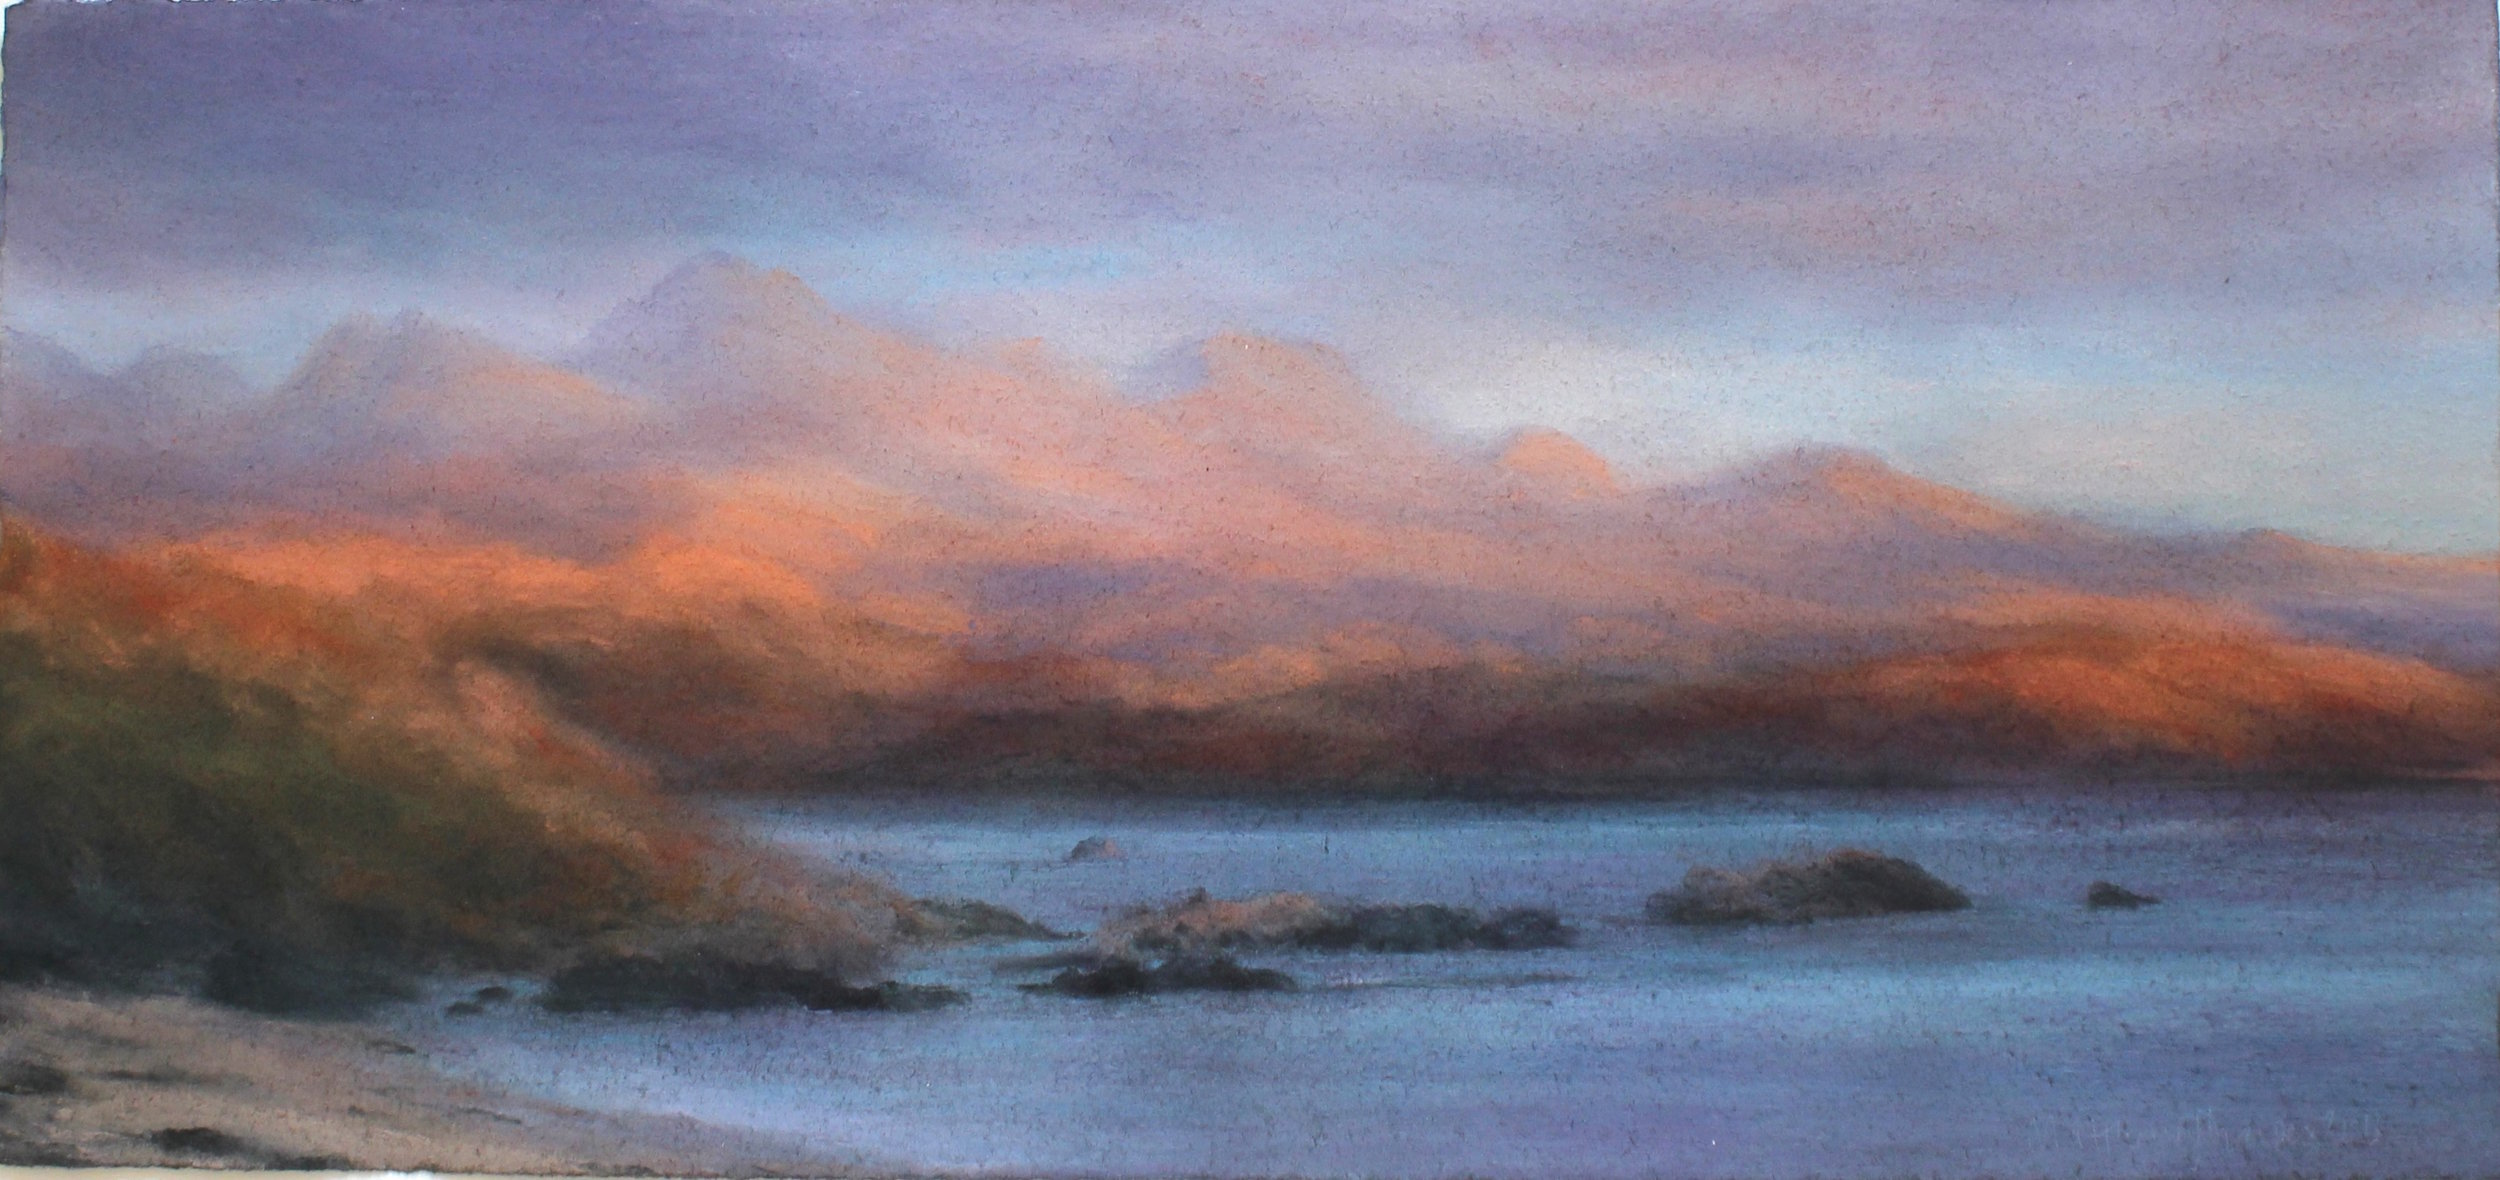 Title: Wester Ross Size: 32 x 68 cm Medium: Pastel